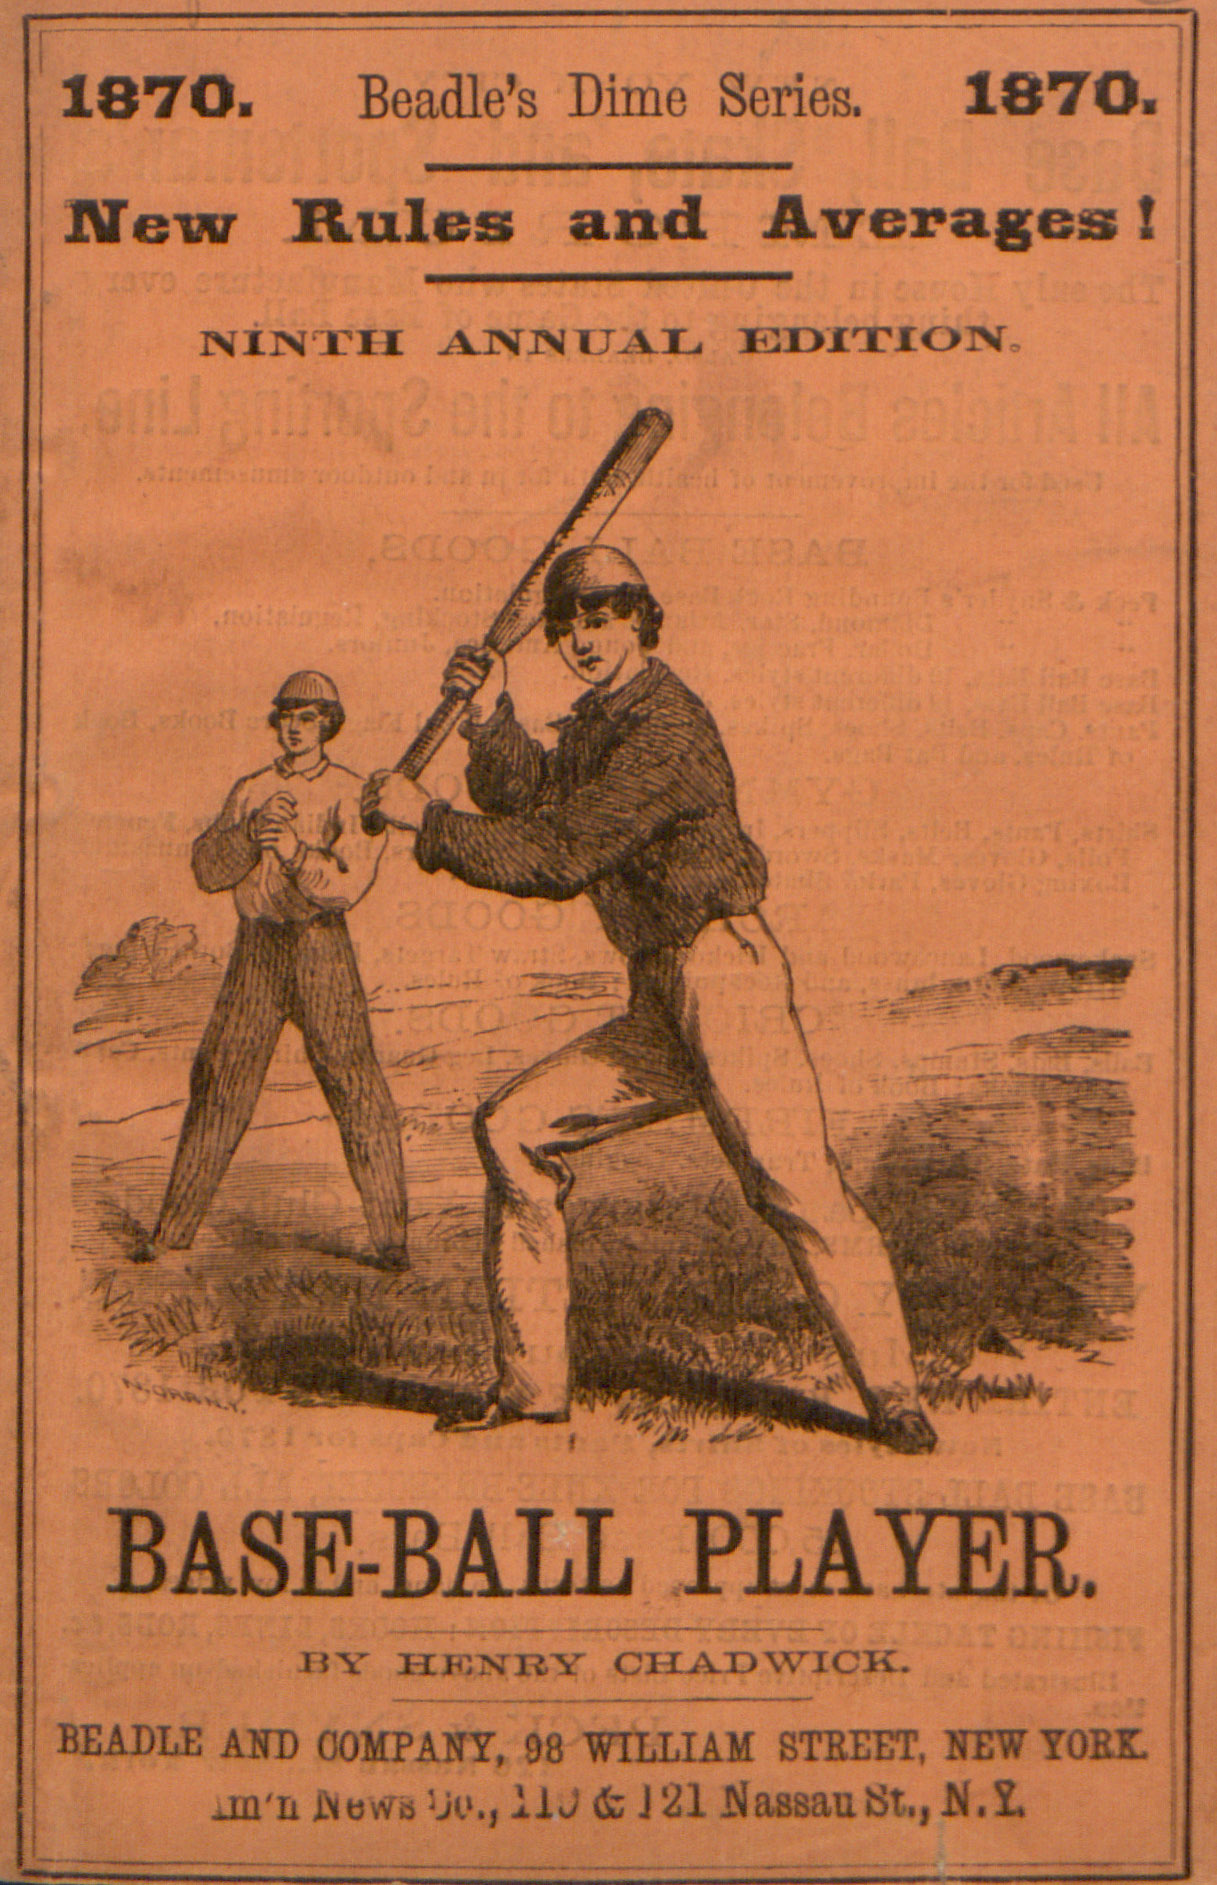 Beadle's dime base-ball player (1870)